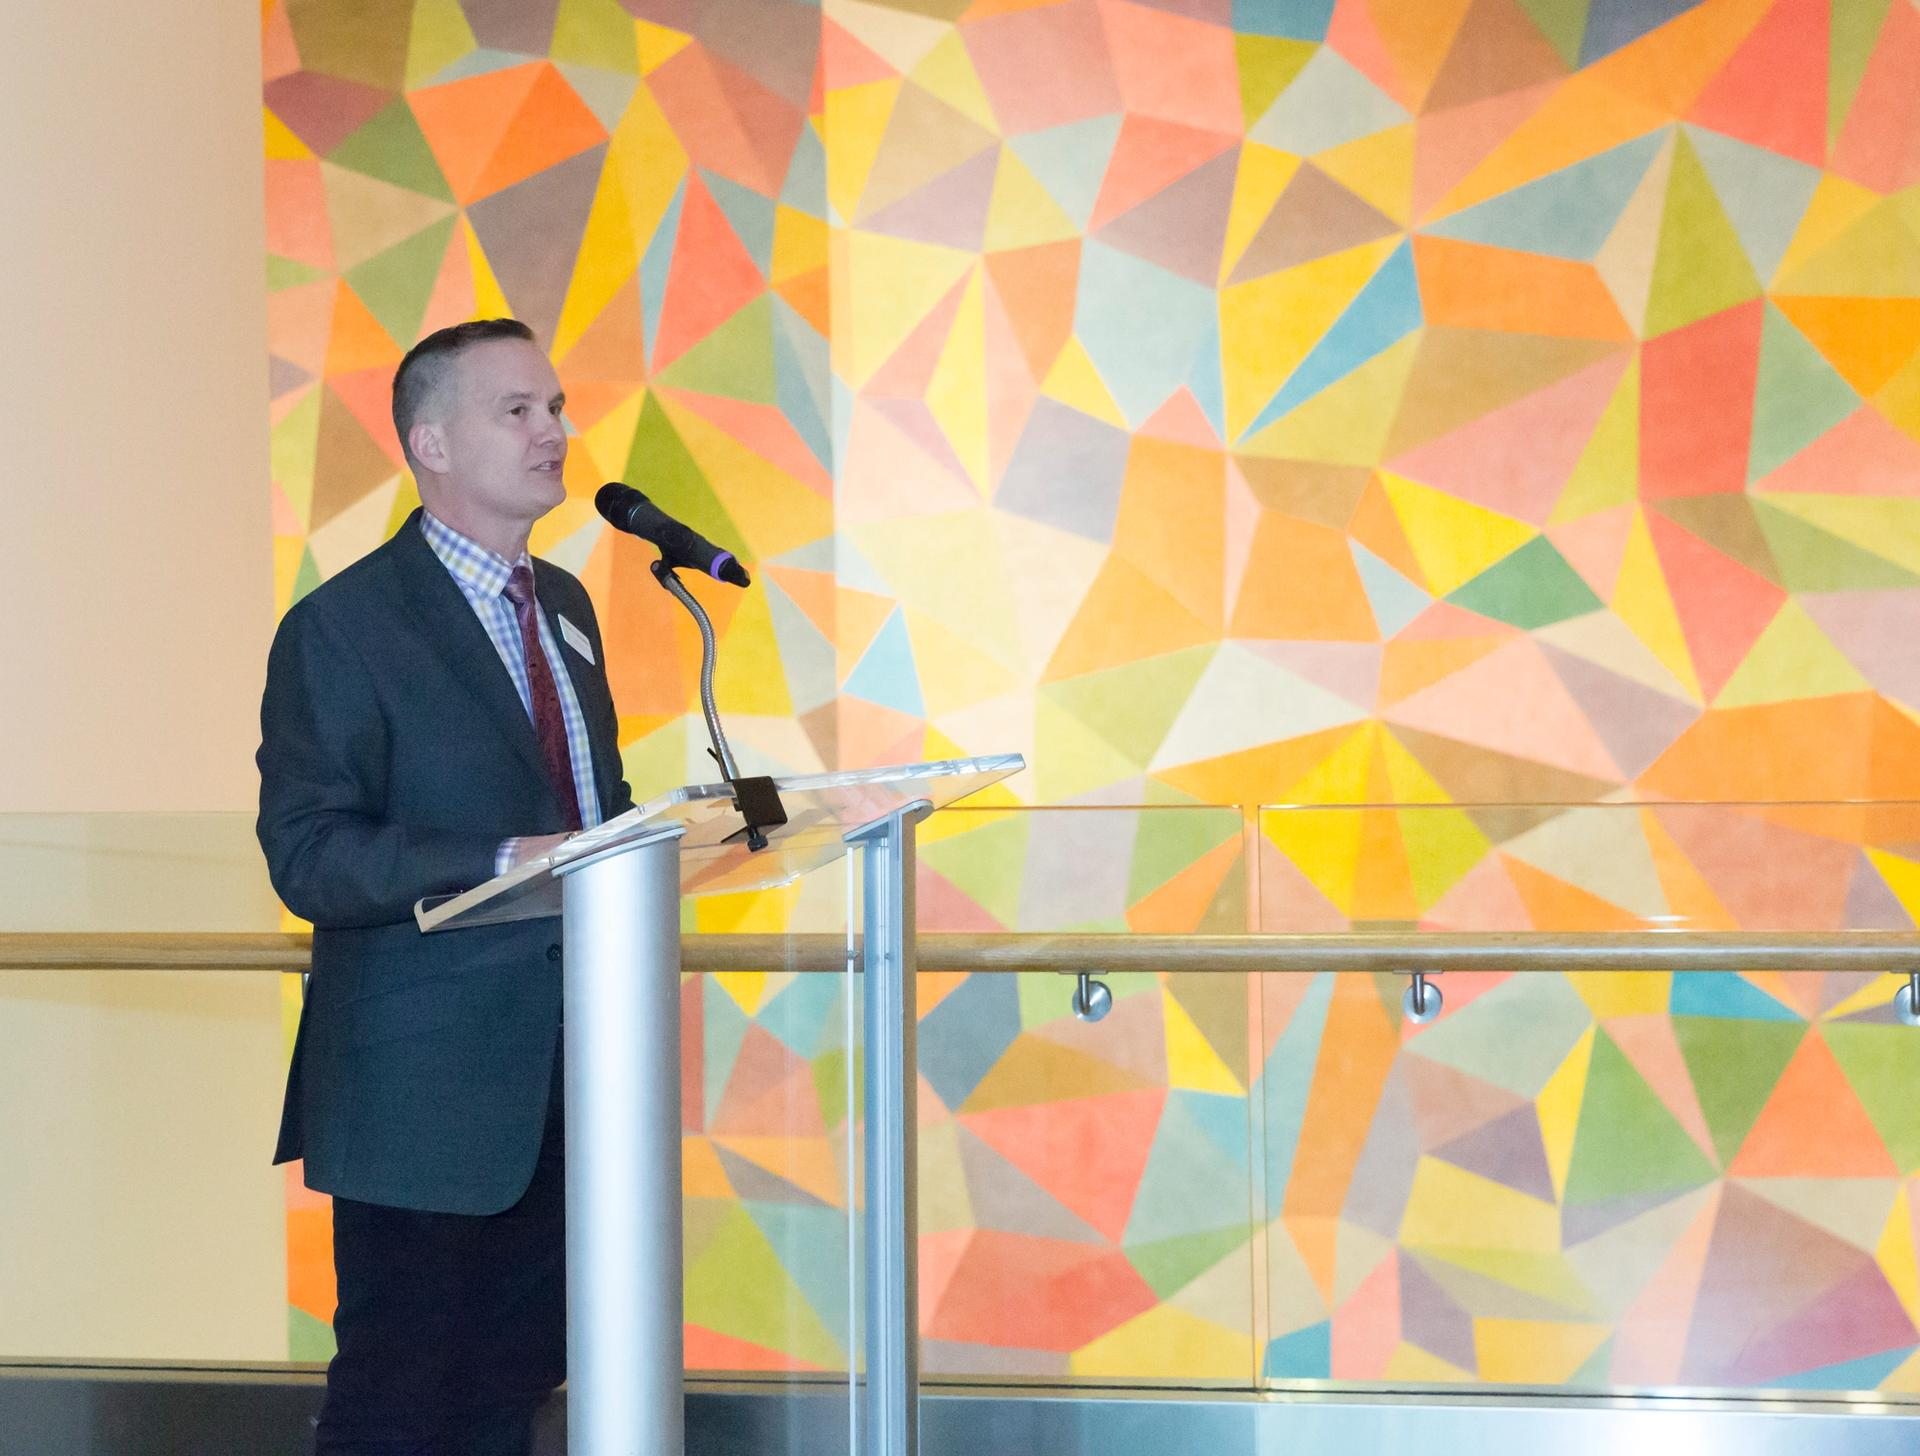 Charles Venable speaks at the opening of the Indianapolis Museum of Art's 2016 exhibition A Joy Forever: Marie Webster Quilts Photo: Tascha Horowitz